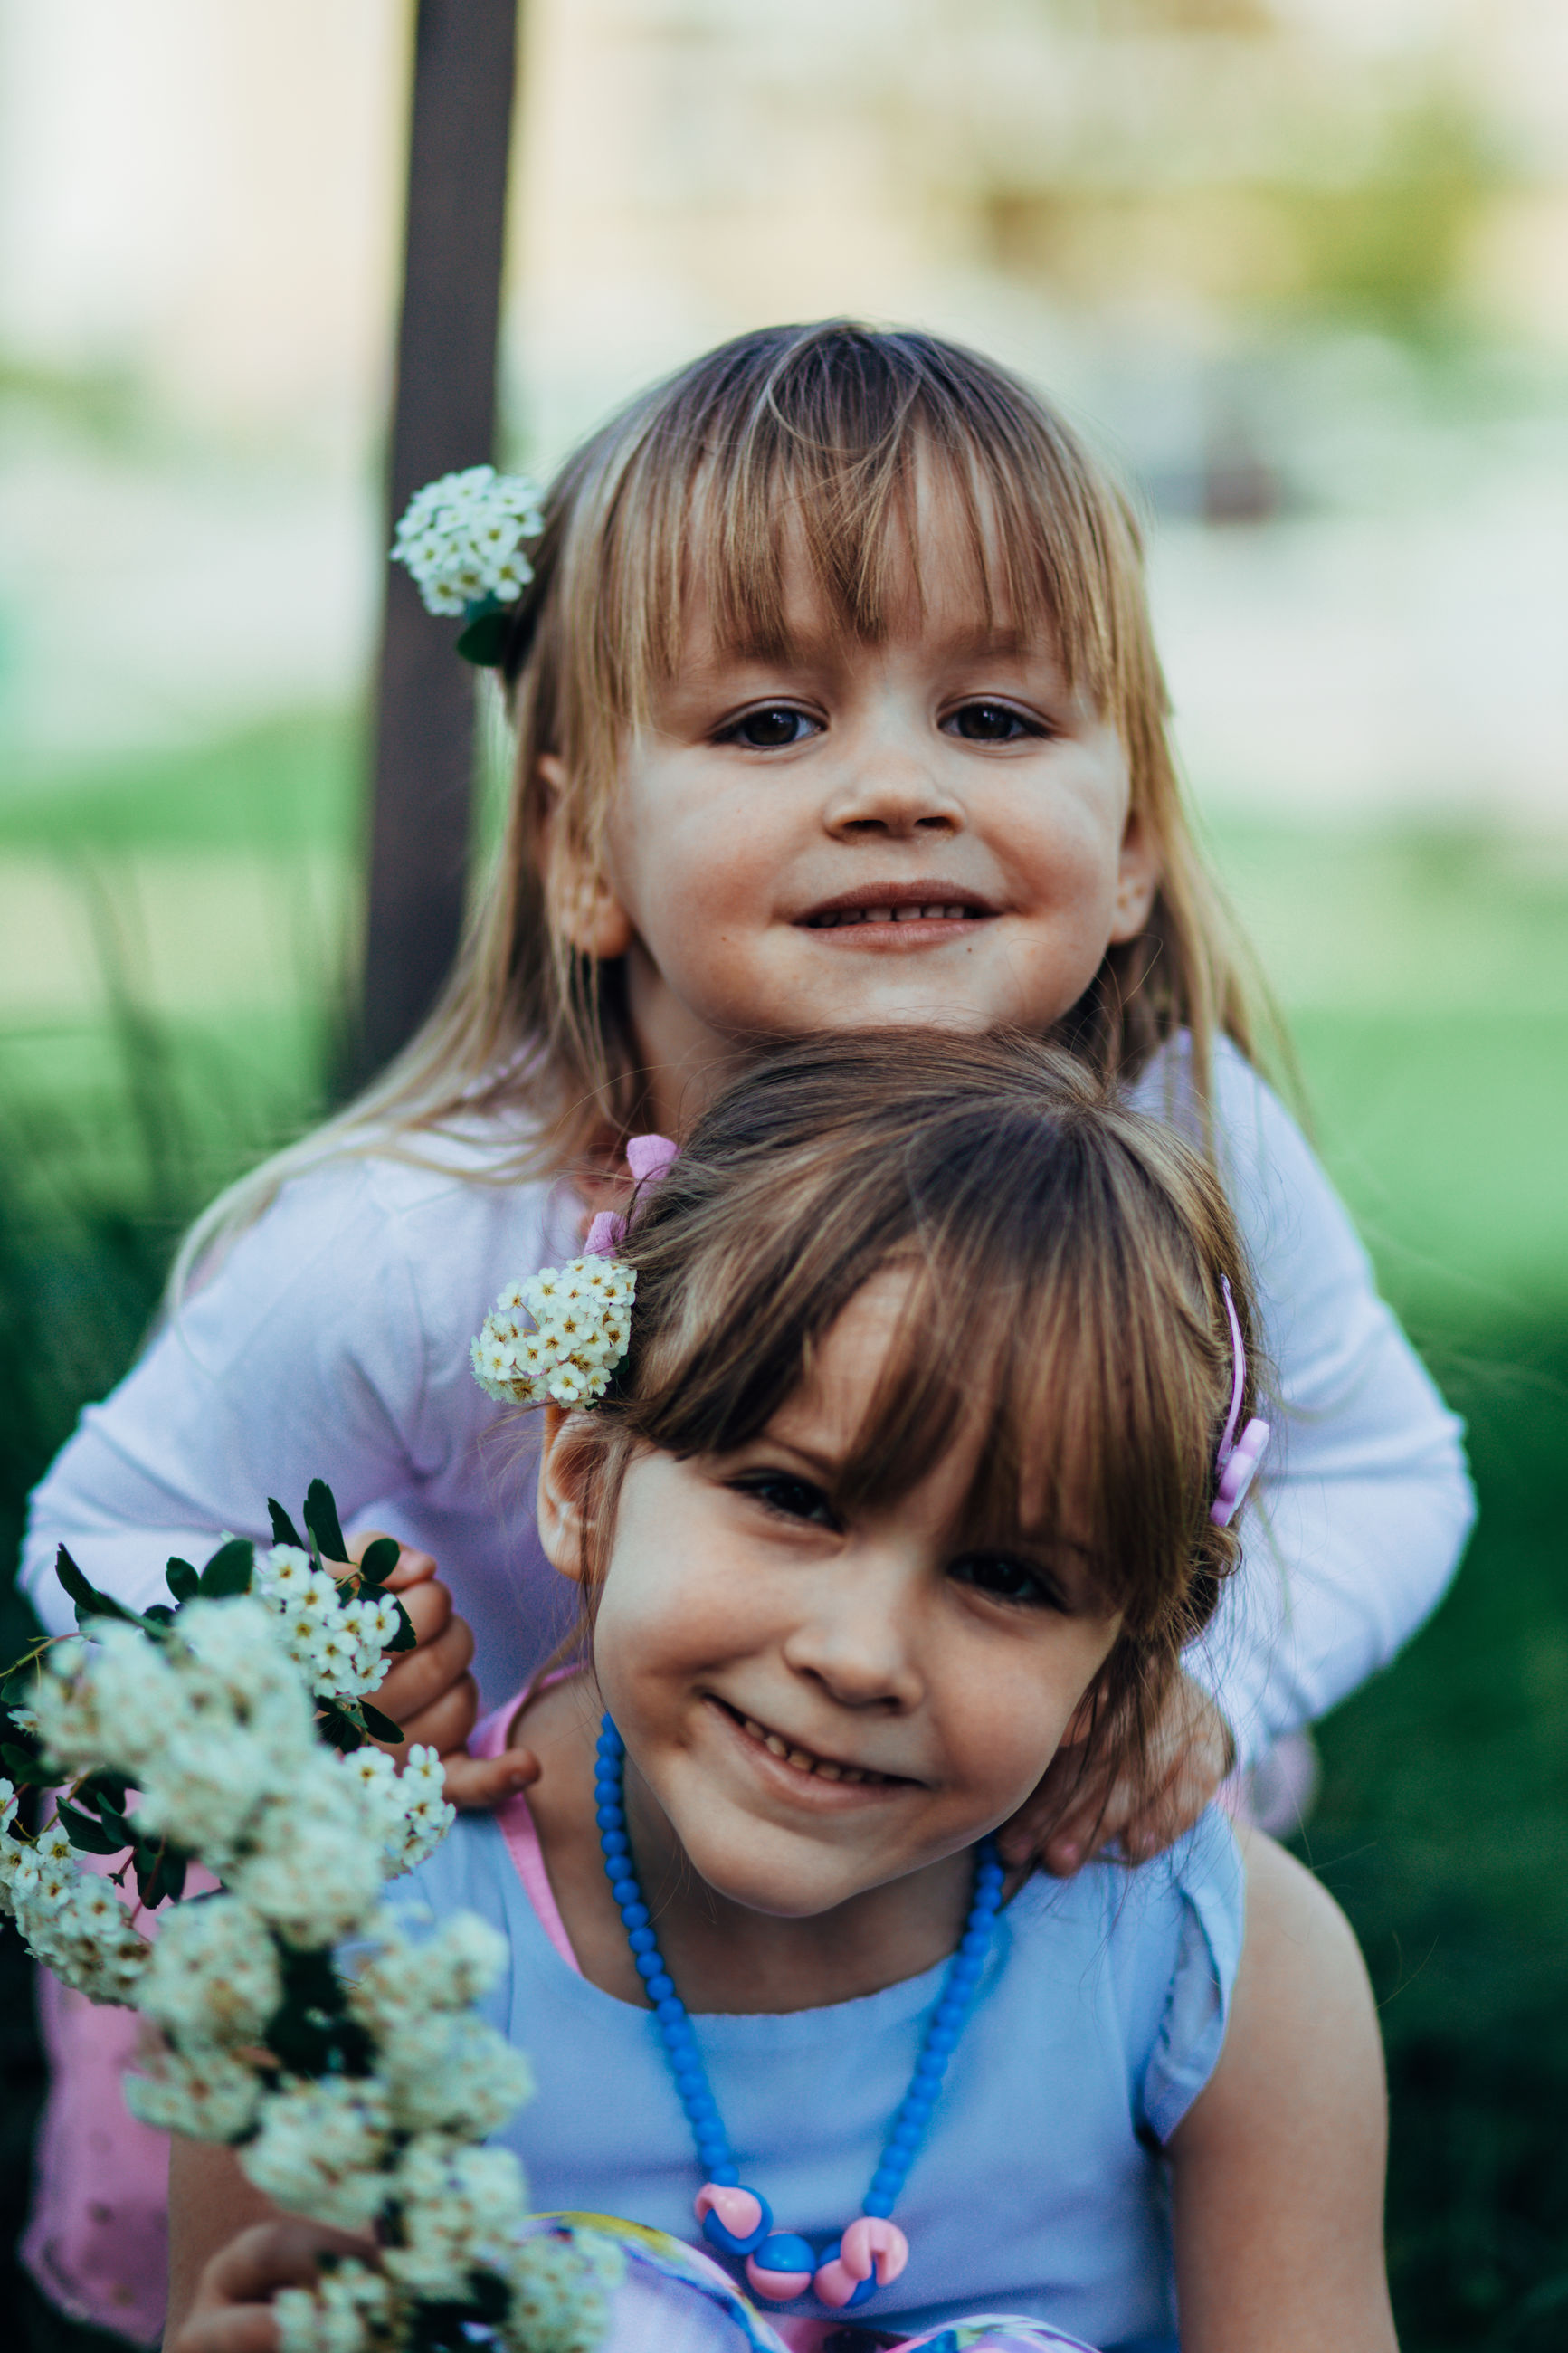 childhood, girls, real people, innocence, looking at camera, happiness, smiling, focus on foreground, togetherness, outdoors, day, cute, portrait, bangs, two people, bonding, leisure activity, front view, flower, elementary age, lifestyles, sitting, grass, nature, close-up, people